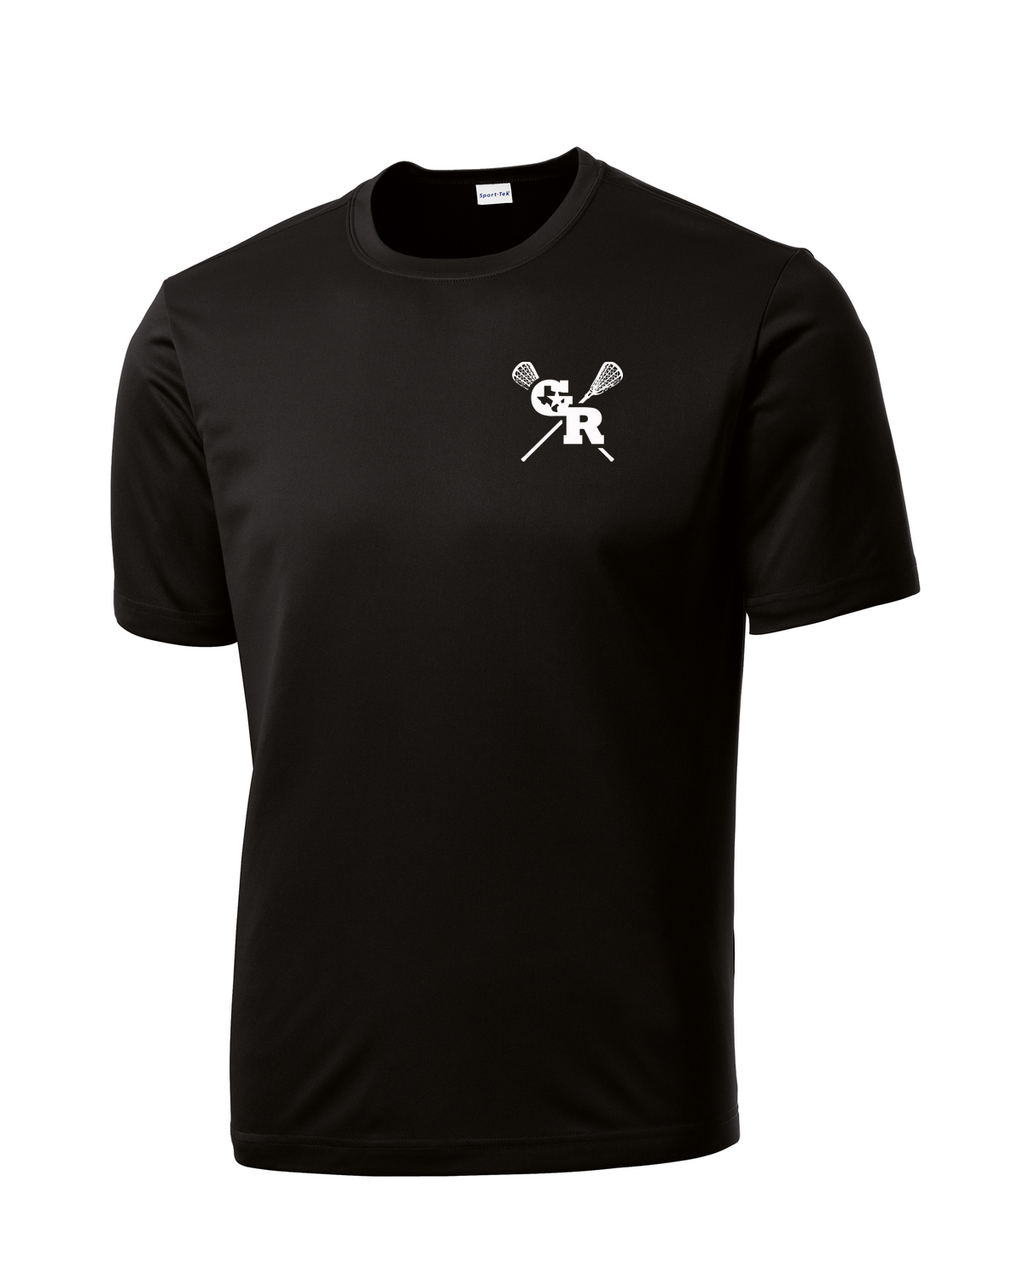 GR Longhorns Lacrosse Performance T-Shirt